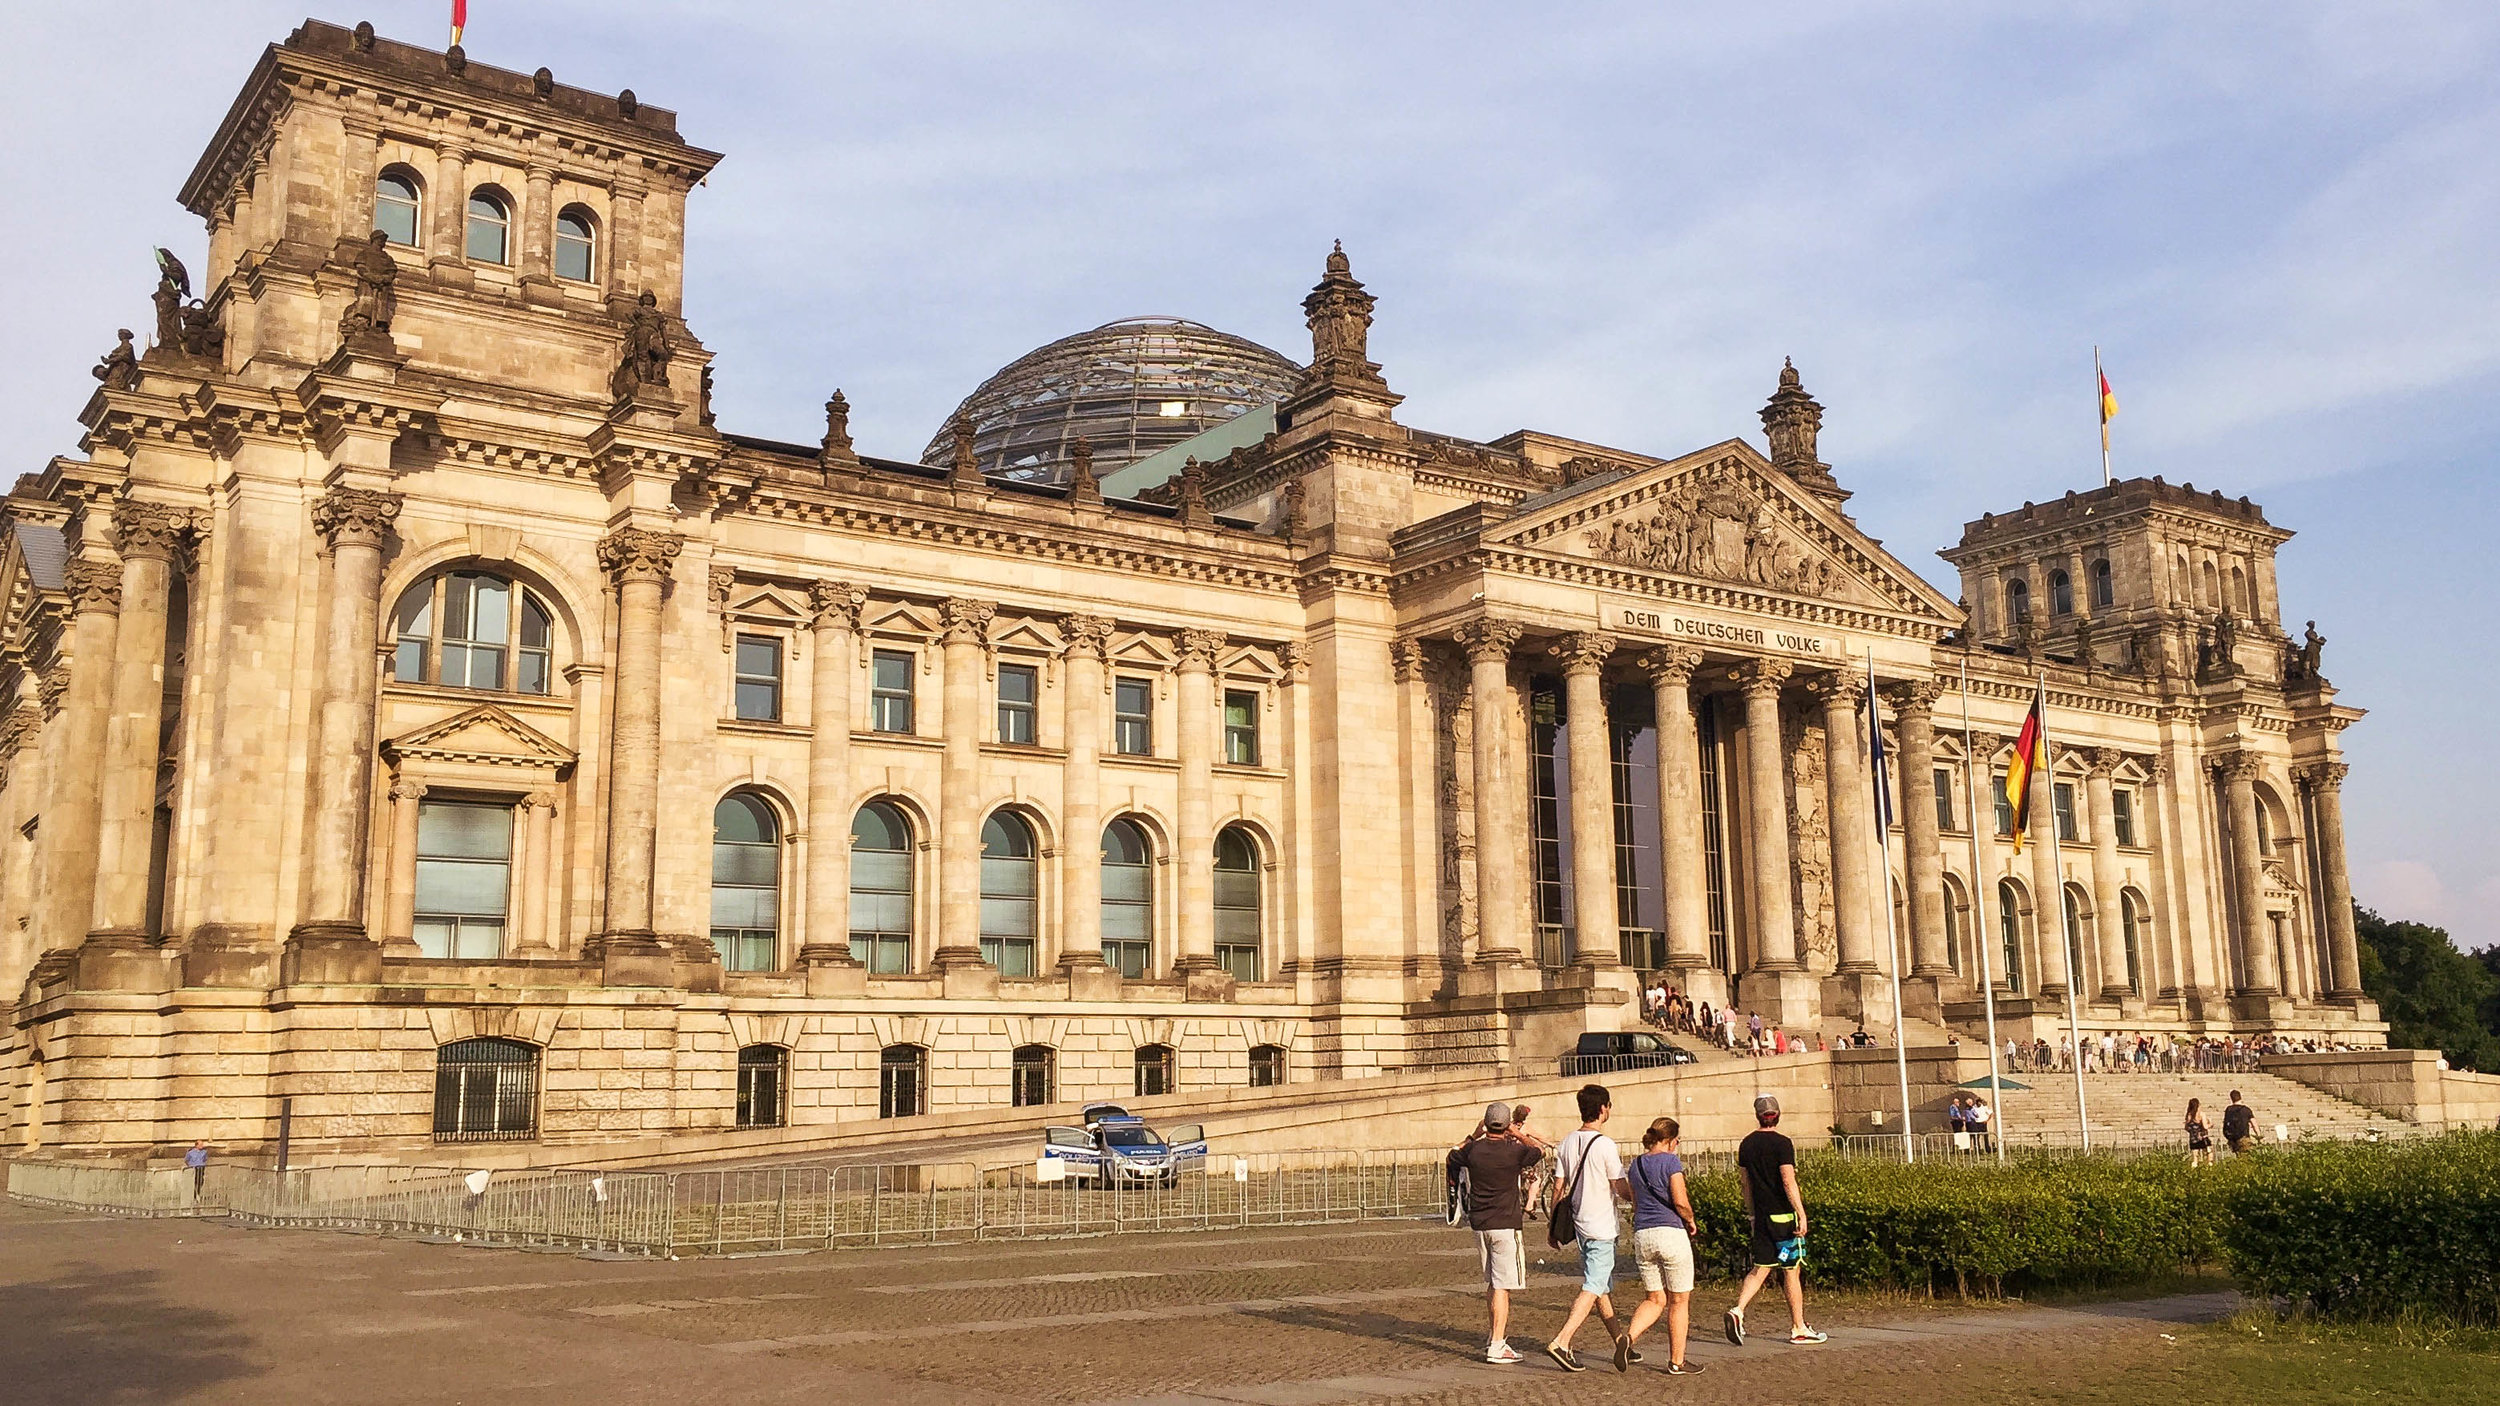 The German Bundestag has passed some of the most restrictive laws criminalizing Holocaust denial and promotion of Nazi ideology, but has faced backlash from Jewish and Muslim communities in Germany for its debate of the legality of male circumcision.